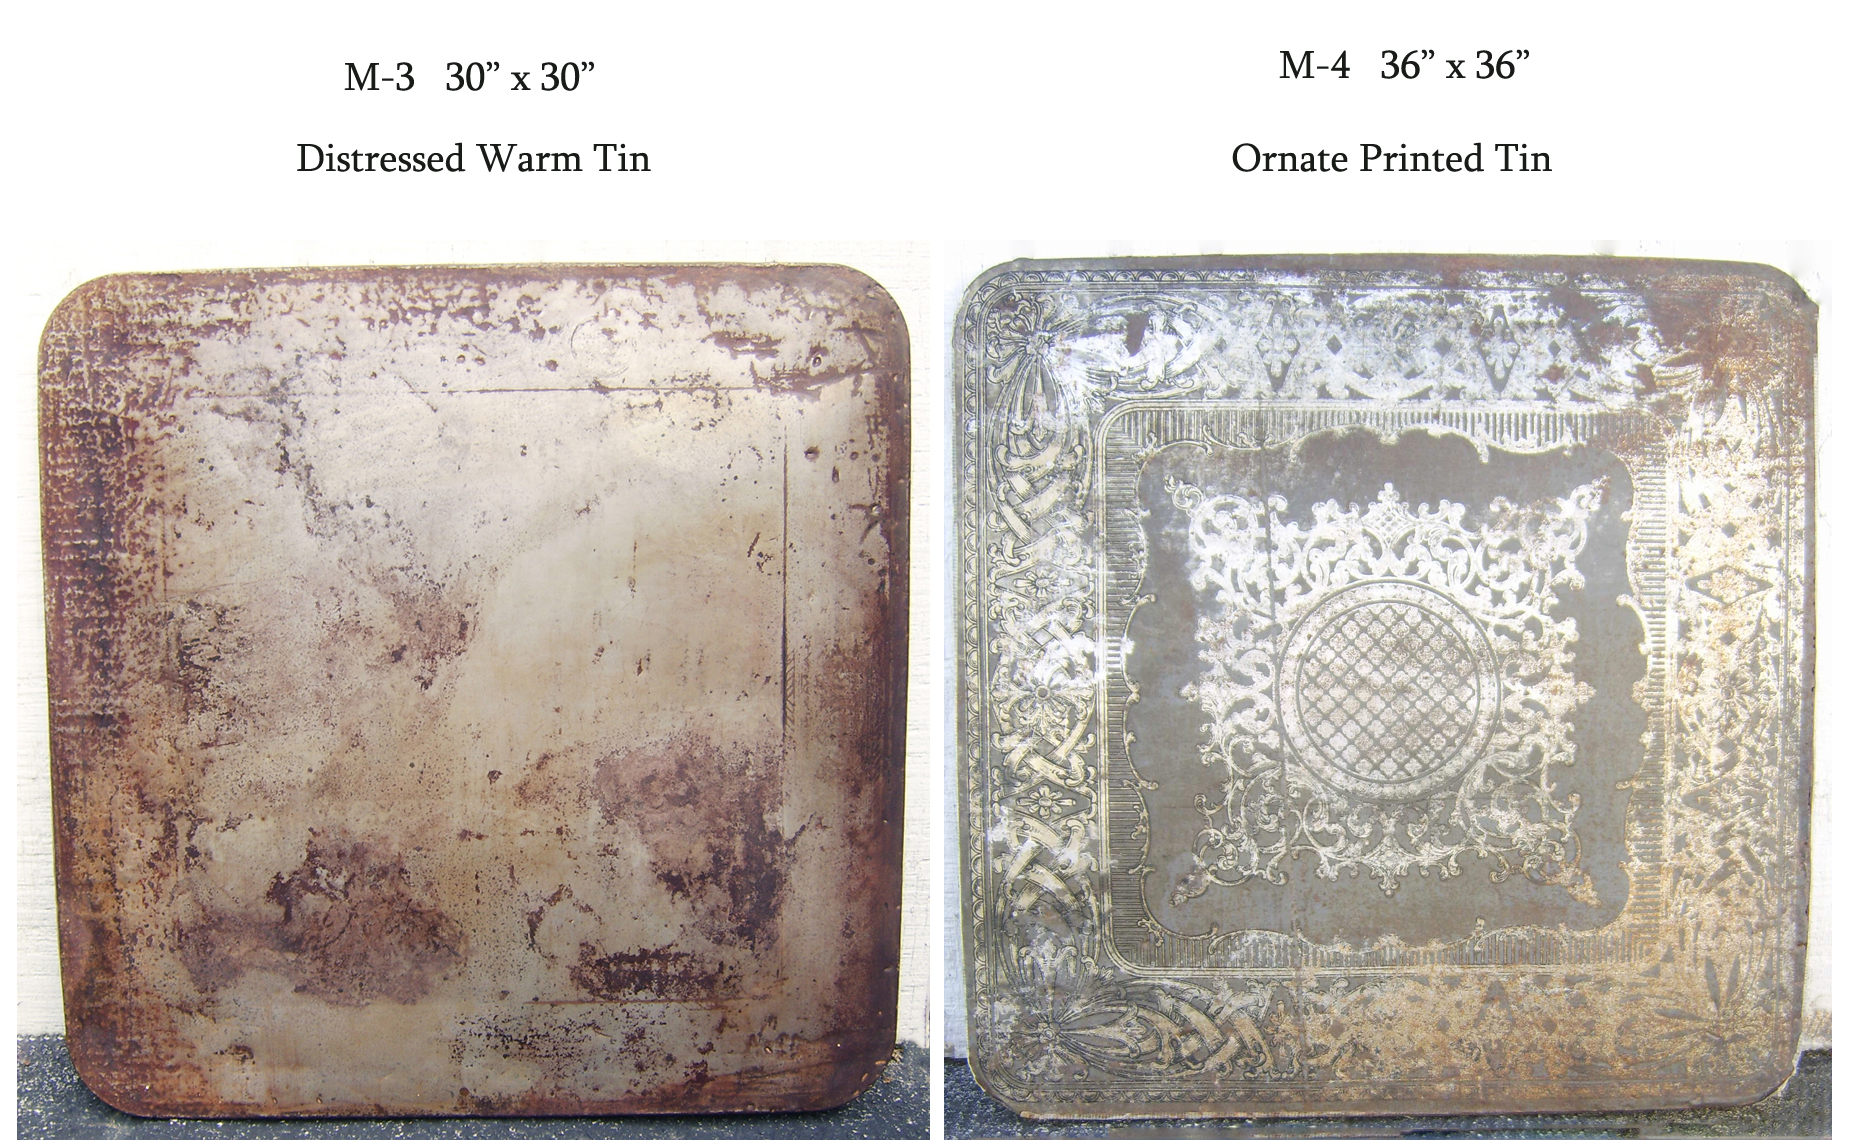 distressed tin background, aged metal surface, food photography surface, corroded metal, printed tin table top